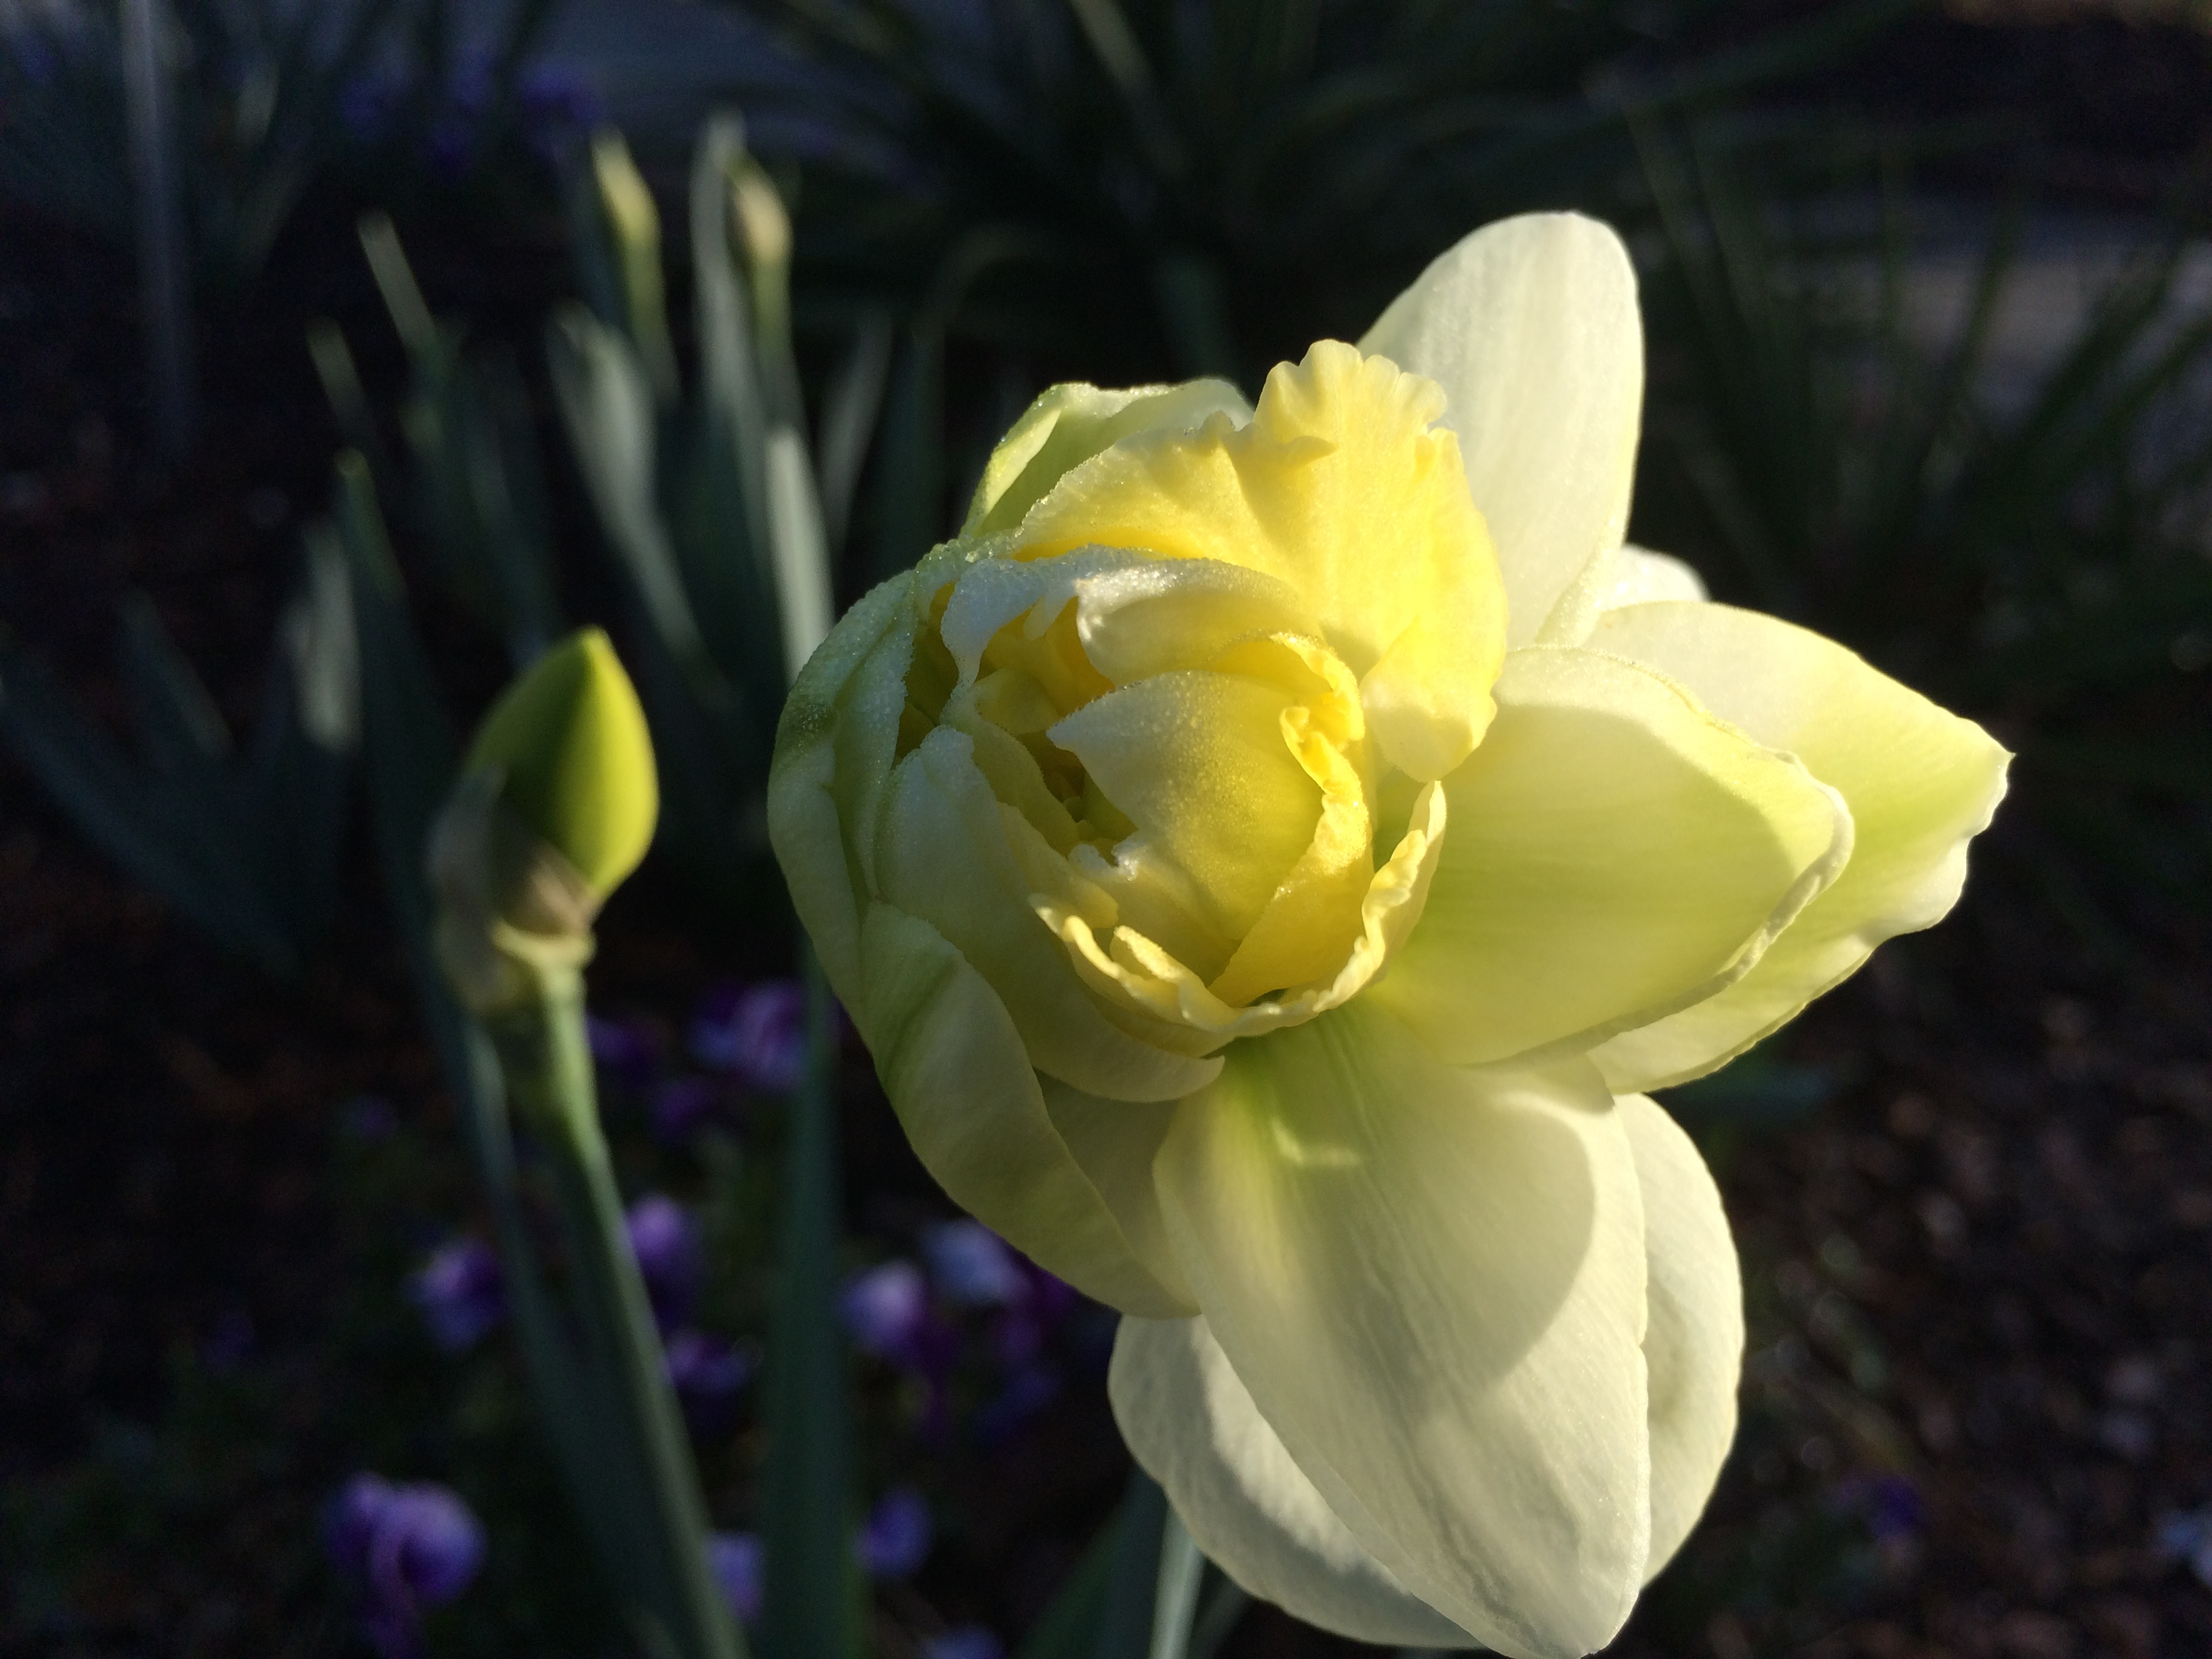 Narcissus 'Polar Ice' double daffodil for healing benefits of nature